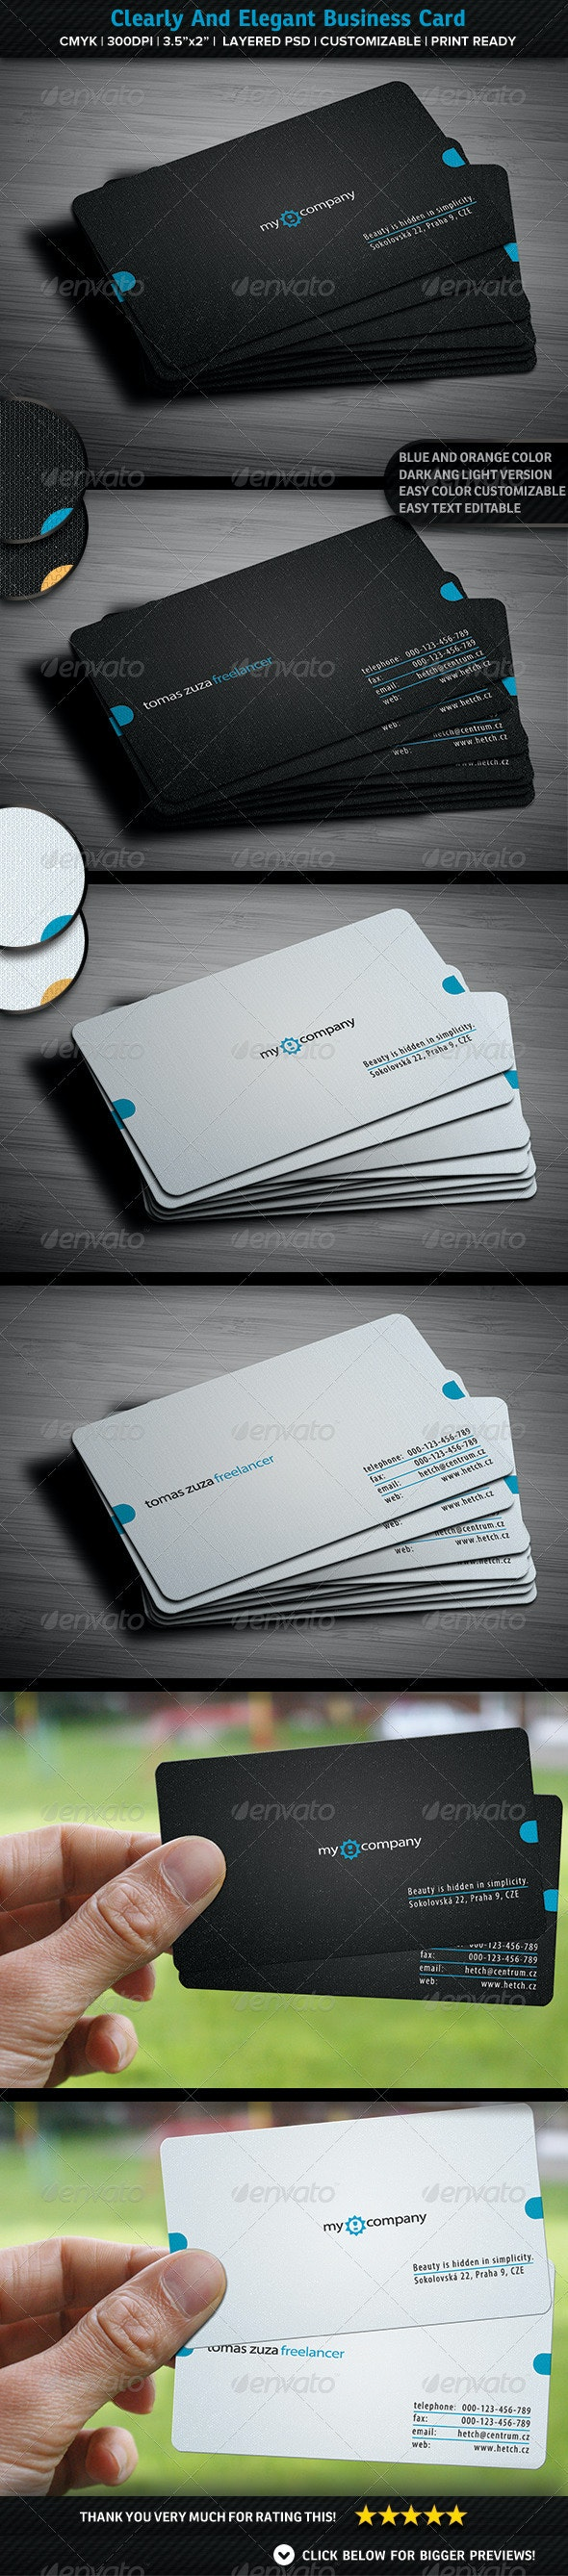 Clearly And Elegant Business Card - Corporate Business Cards